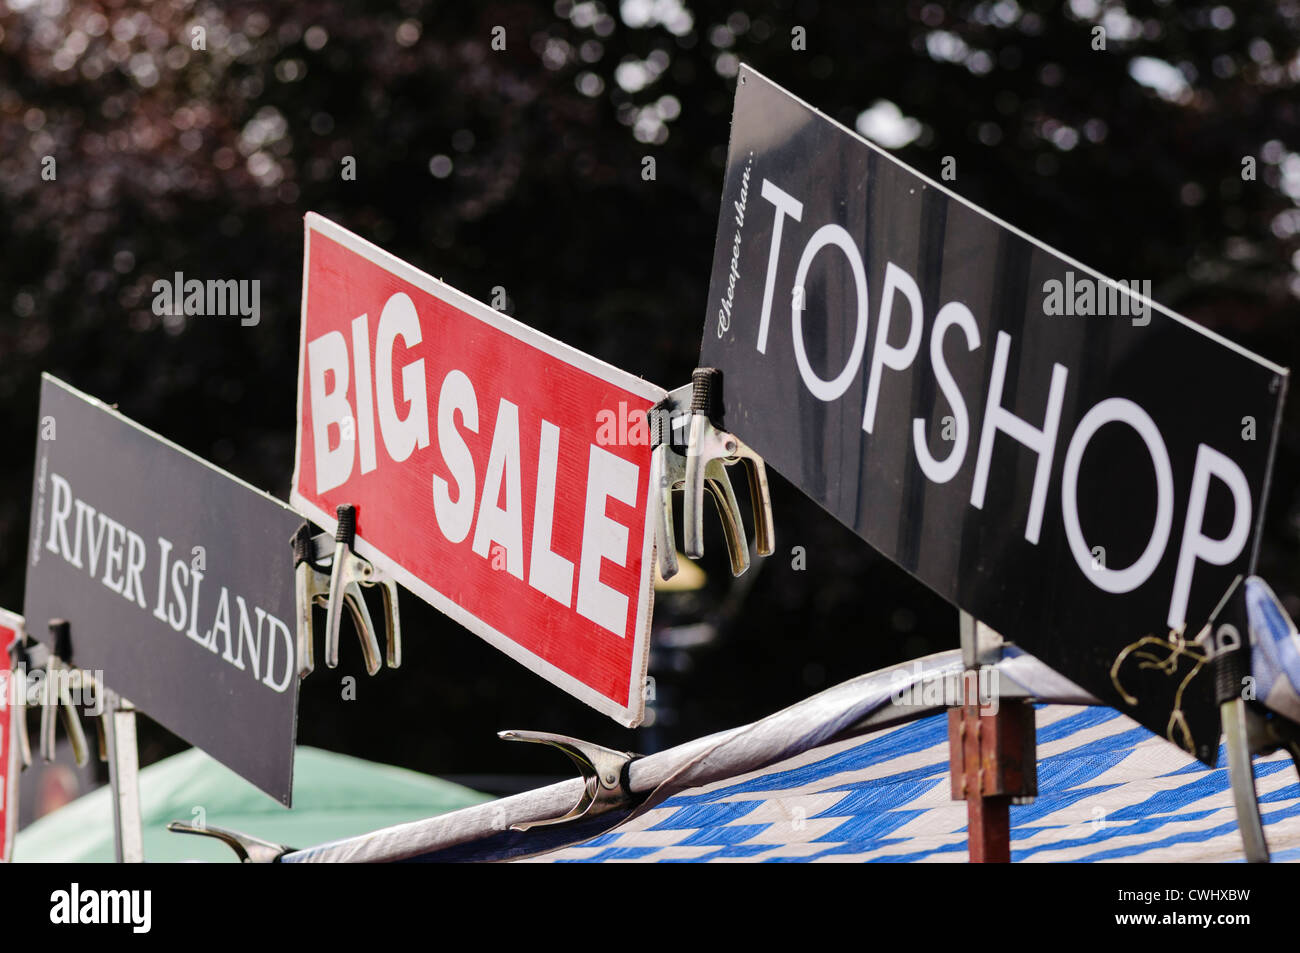 Signs advertising counterfeit products from River Island and Top shop at a market stall Stock Photo